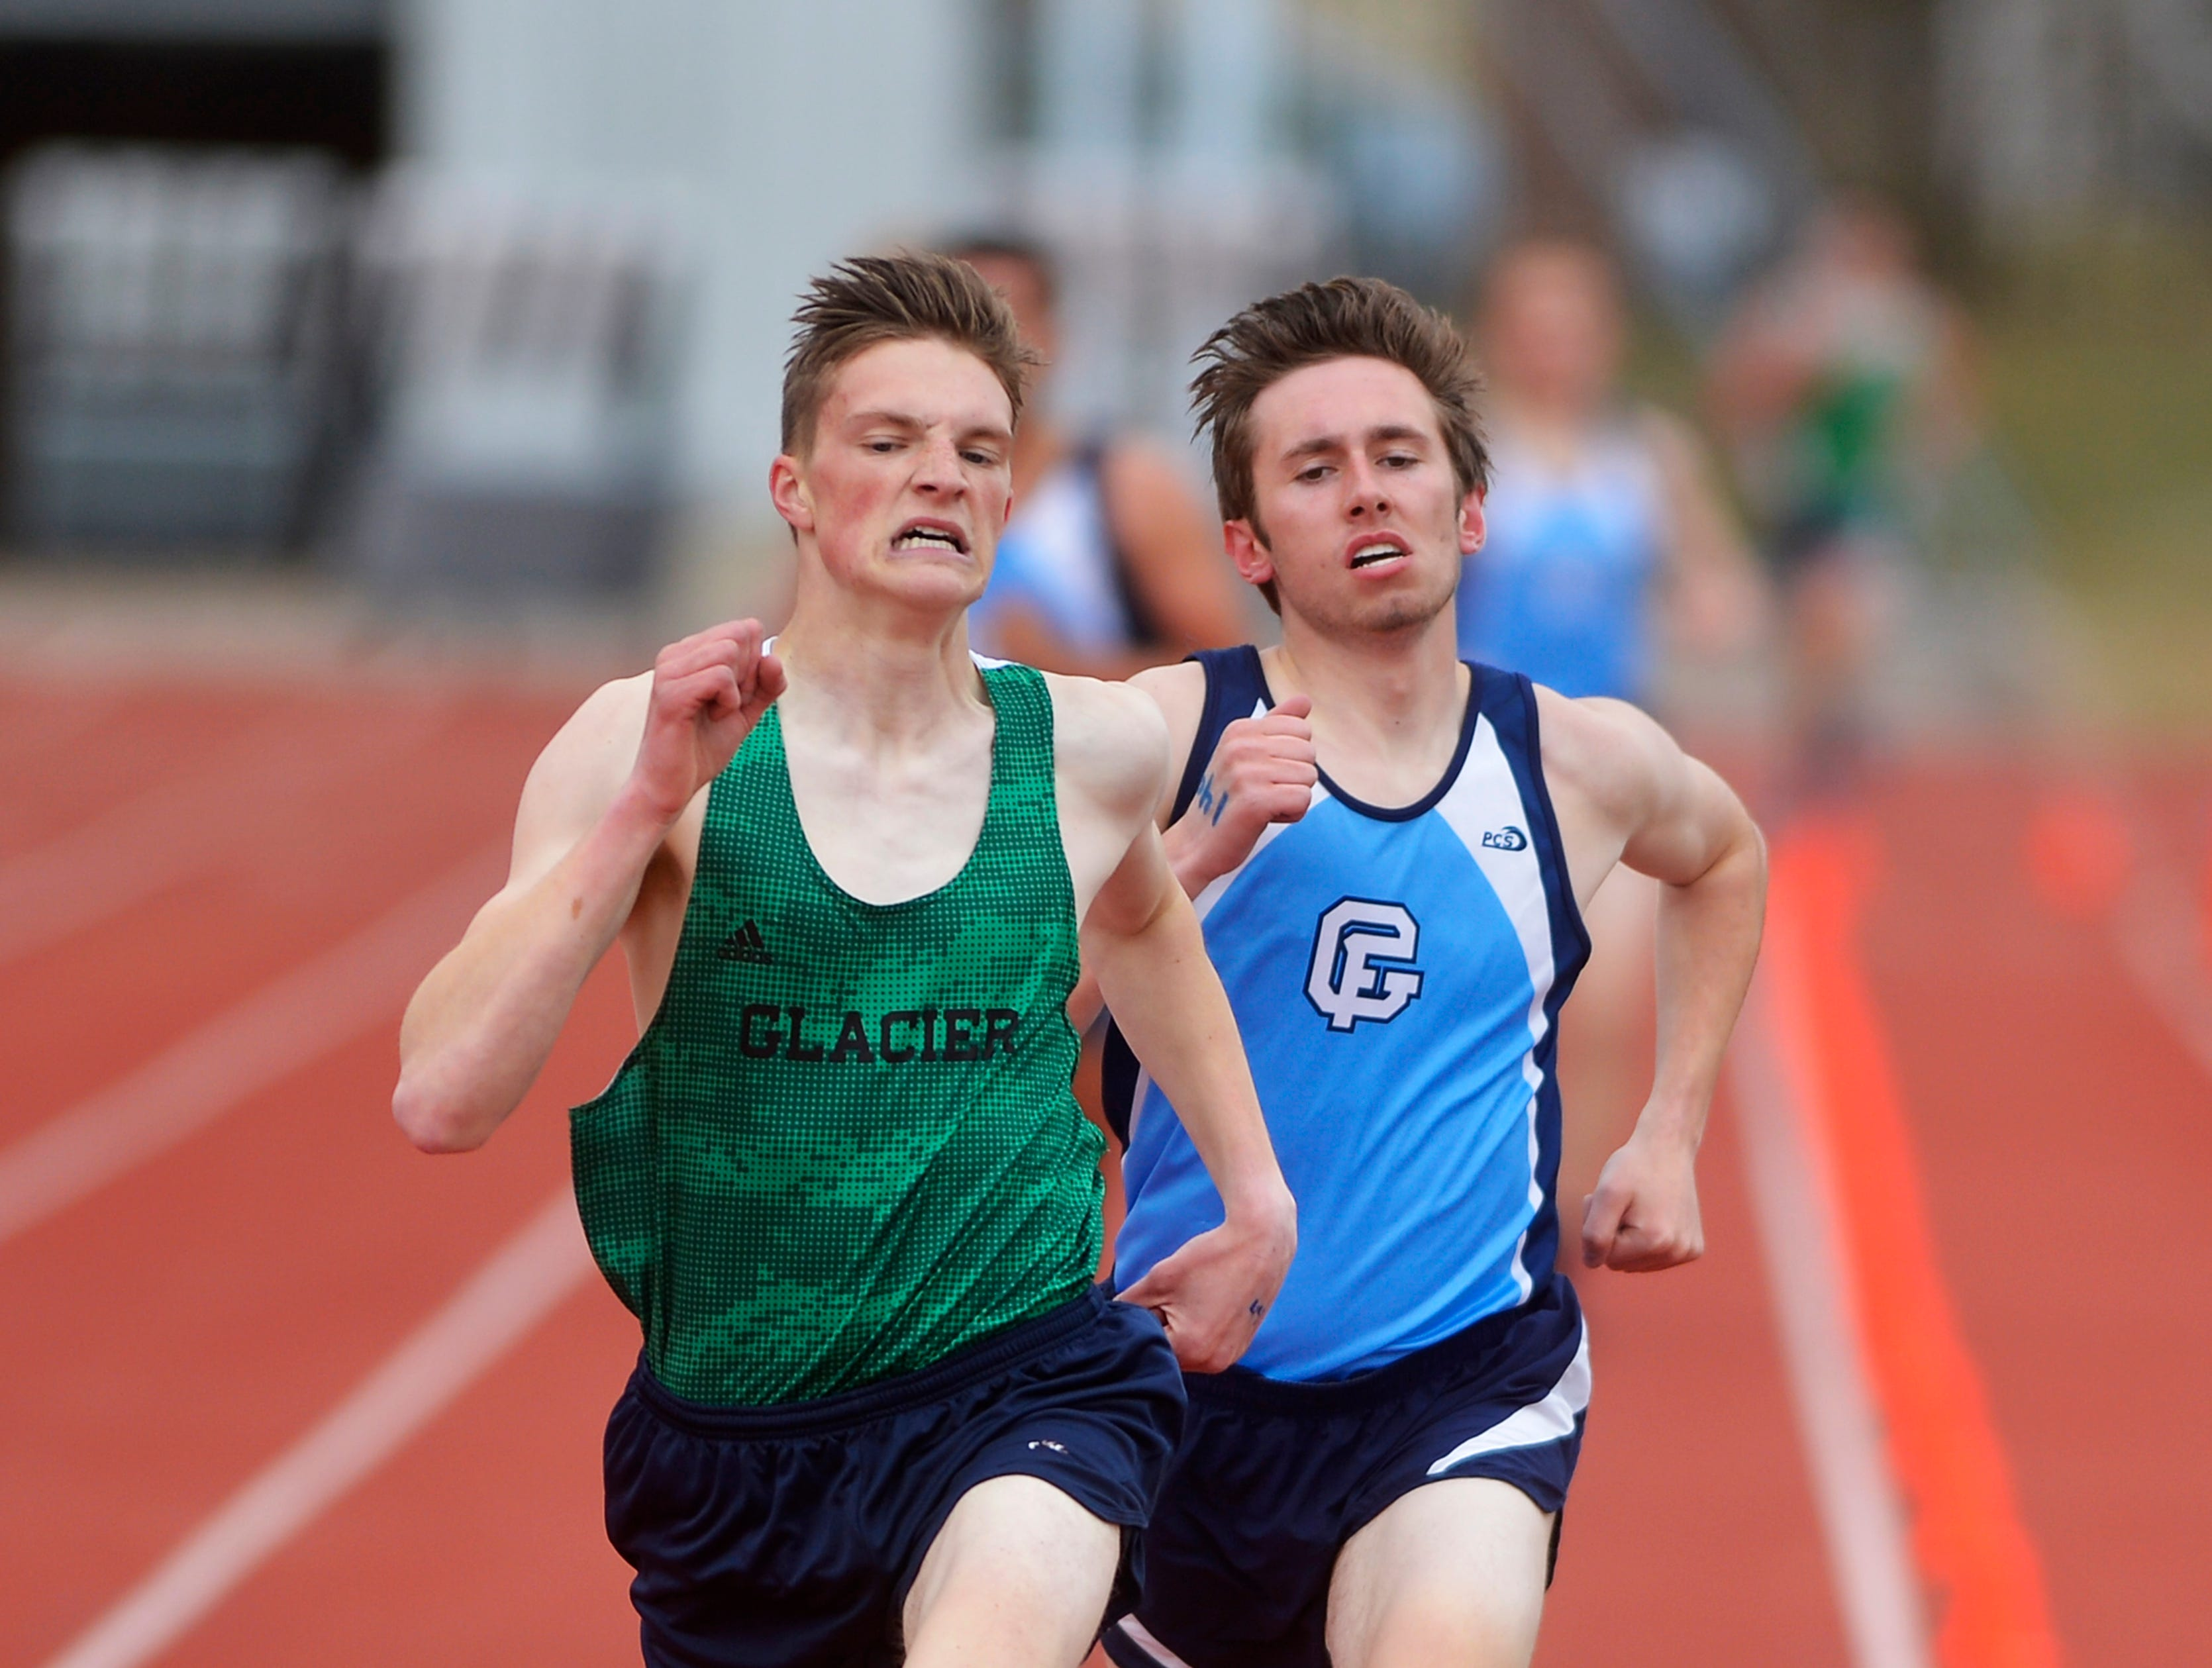 The boys 1600m run during Friday's track meet between Great Falls High and Glacier.